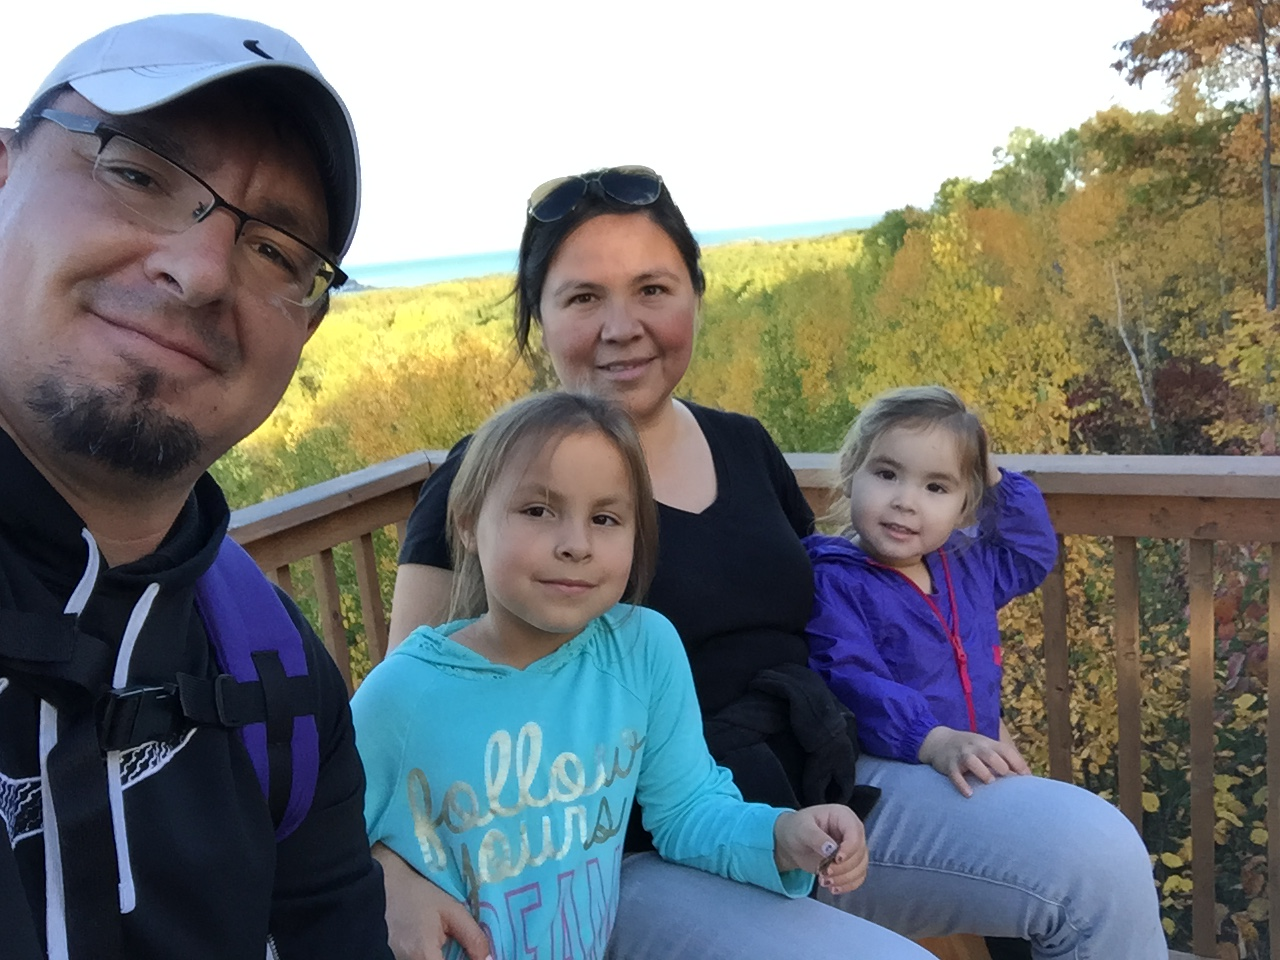 Marcia Trudeau-Bomberry and family. From left to right: Saul Bomberry, Olive-Marie Bomberry, Marcia Trudeau Bomberry, Lauren Bomberry